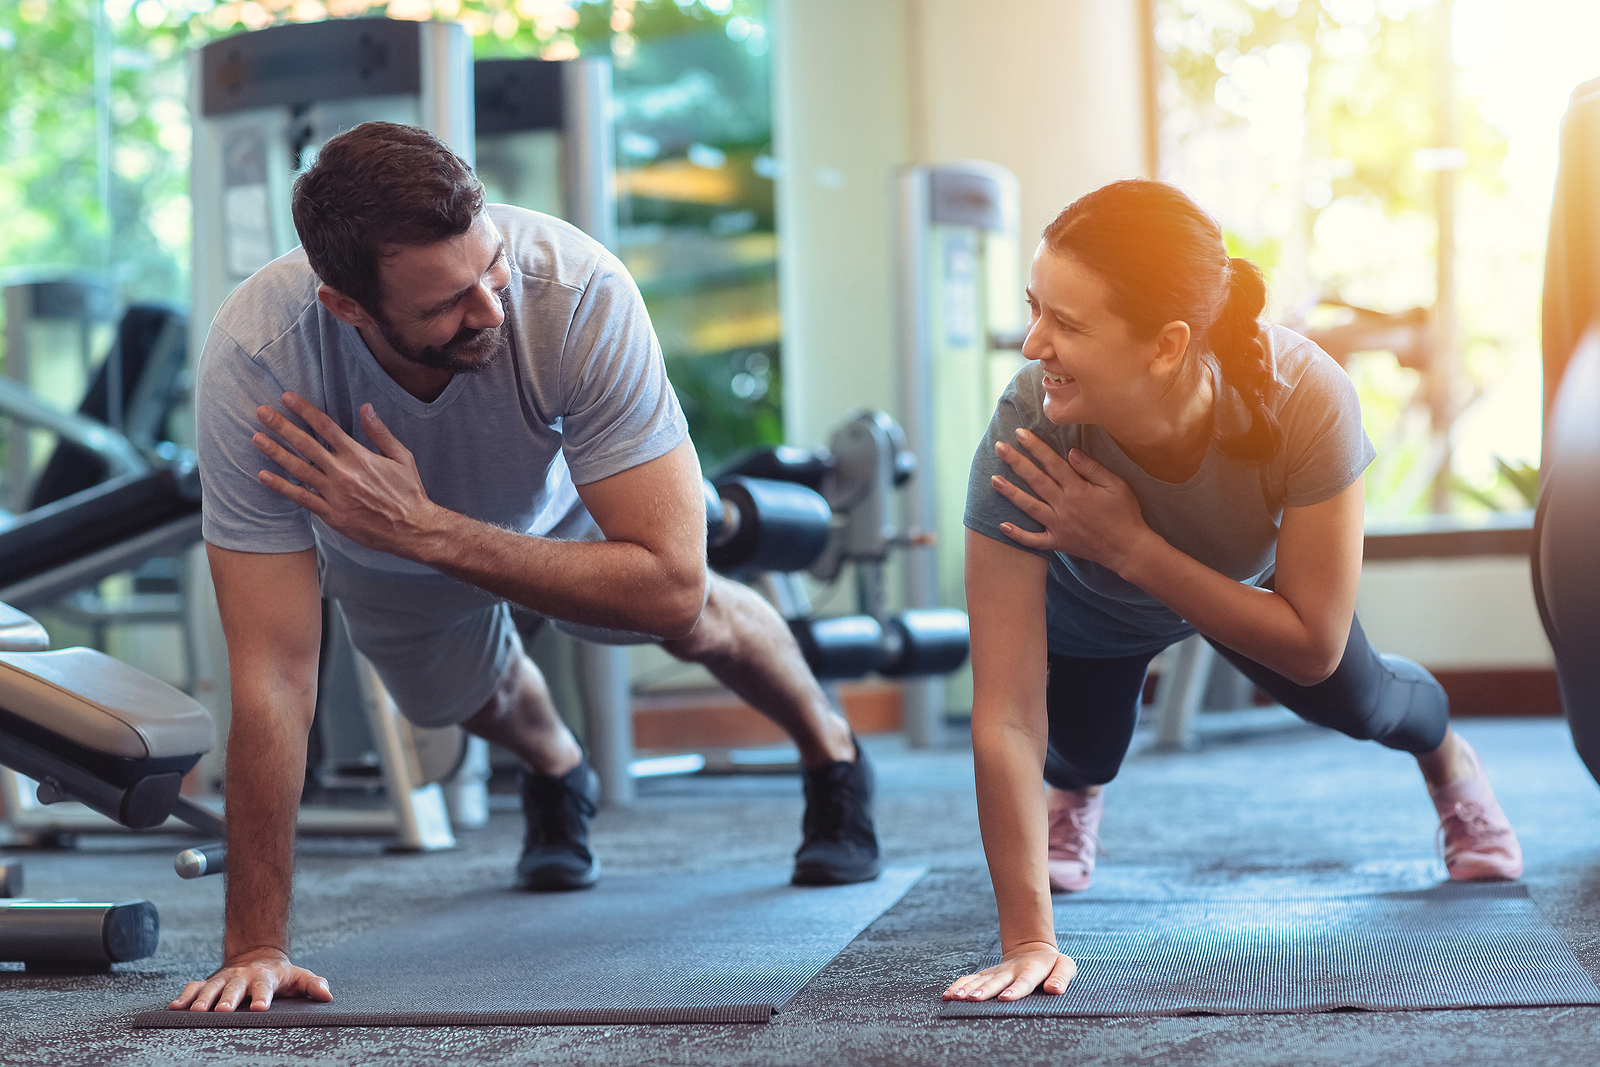 bigstock-Couple-Exercise-Together-In-Gy-368616523